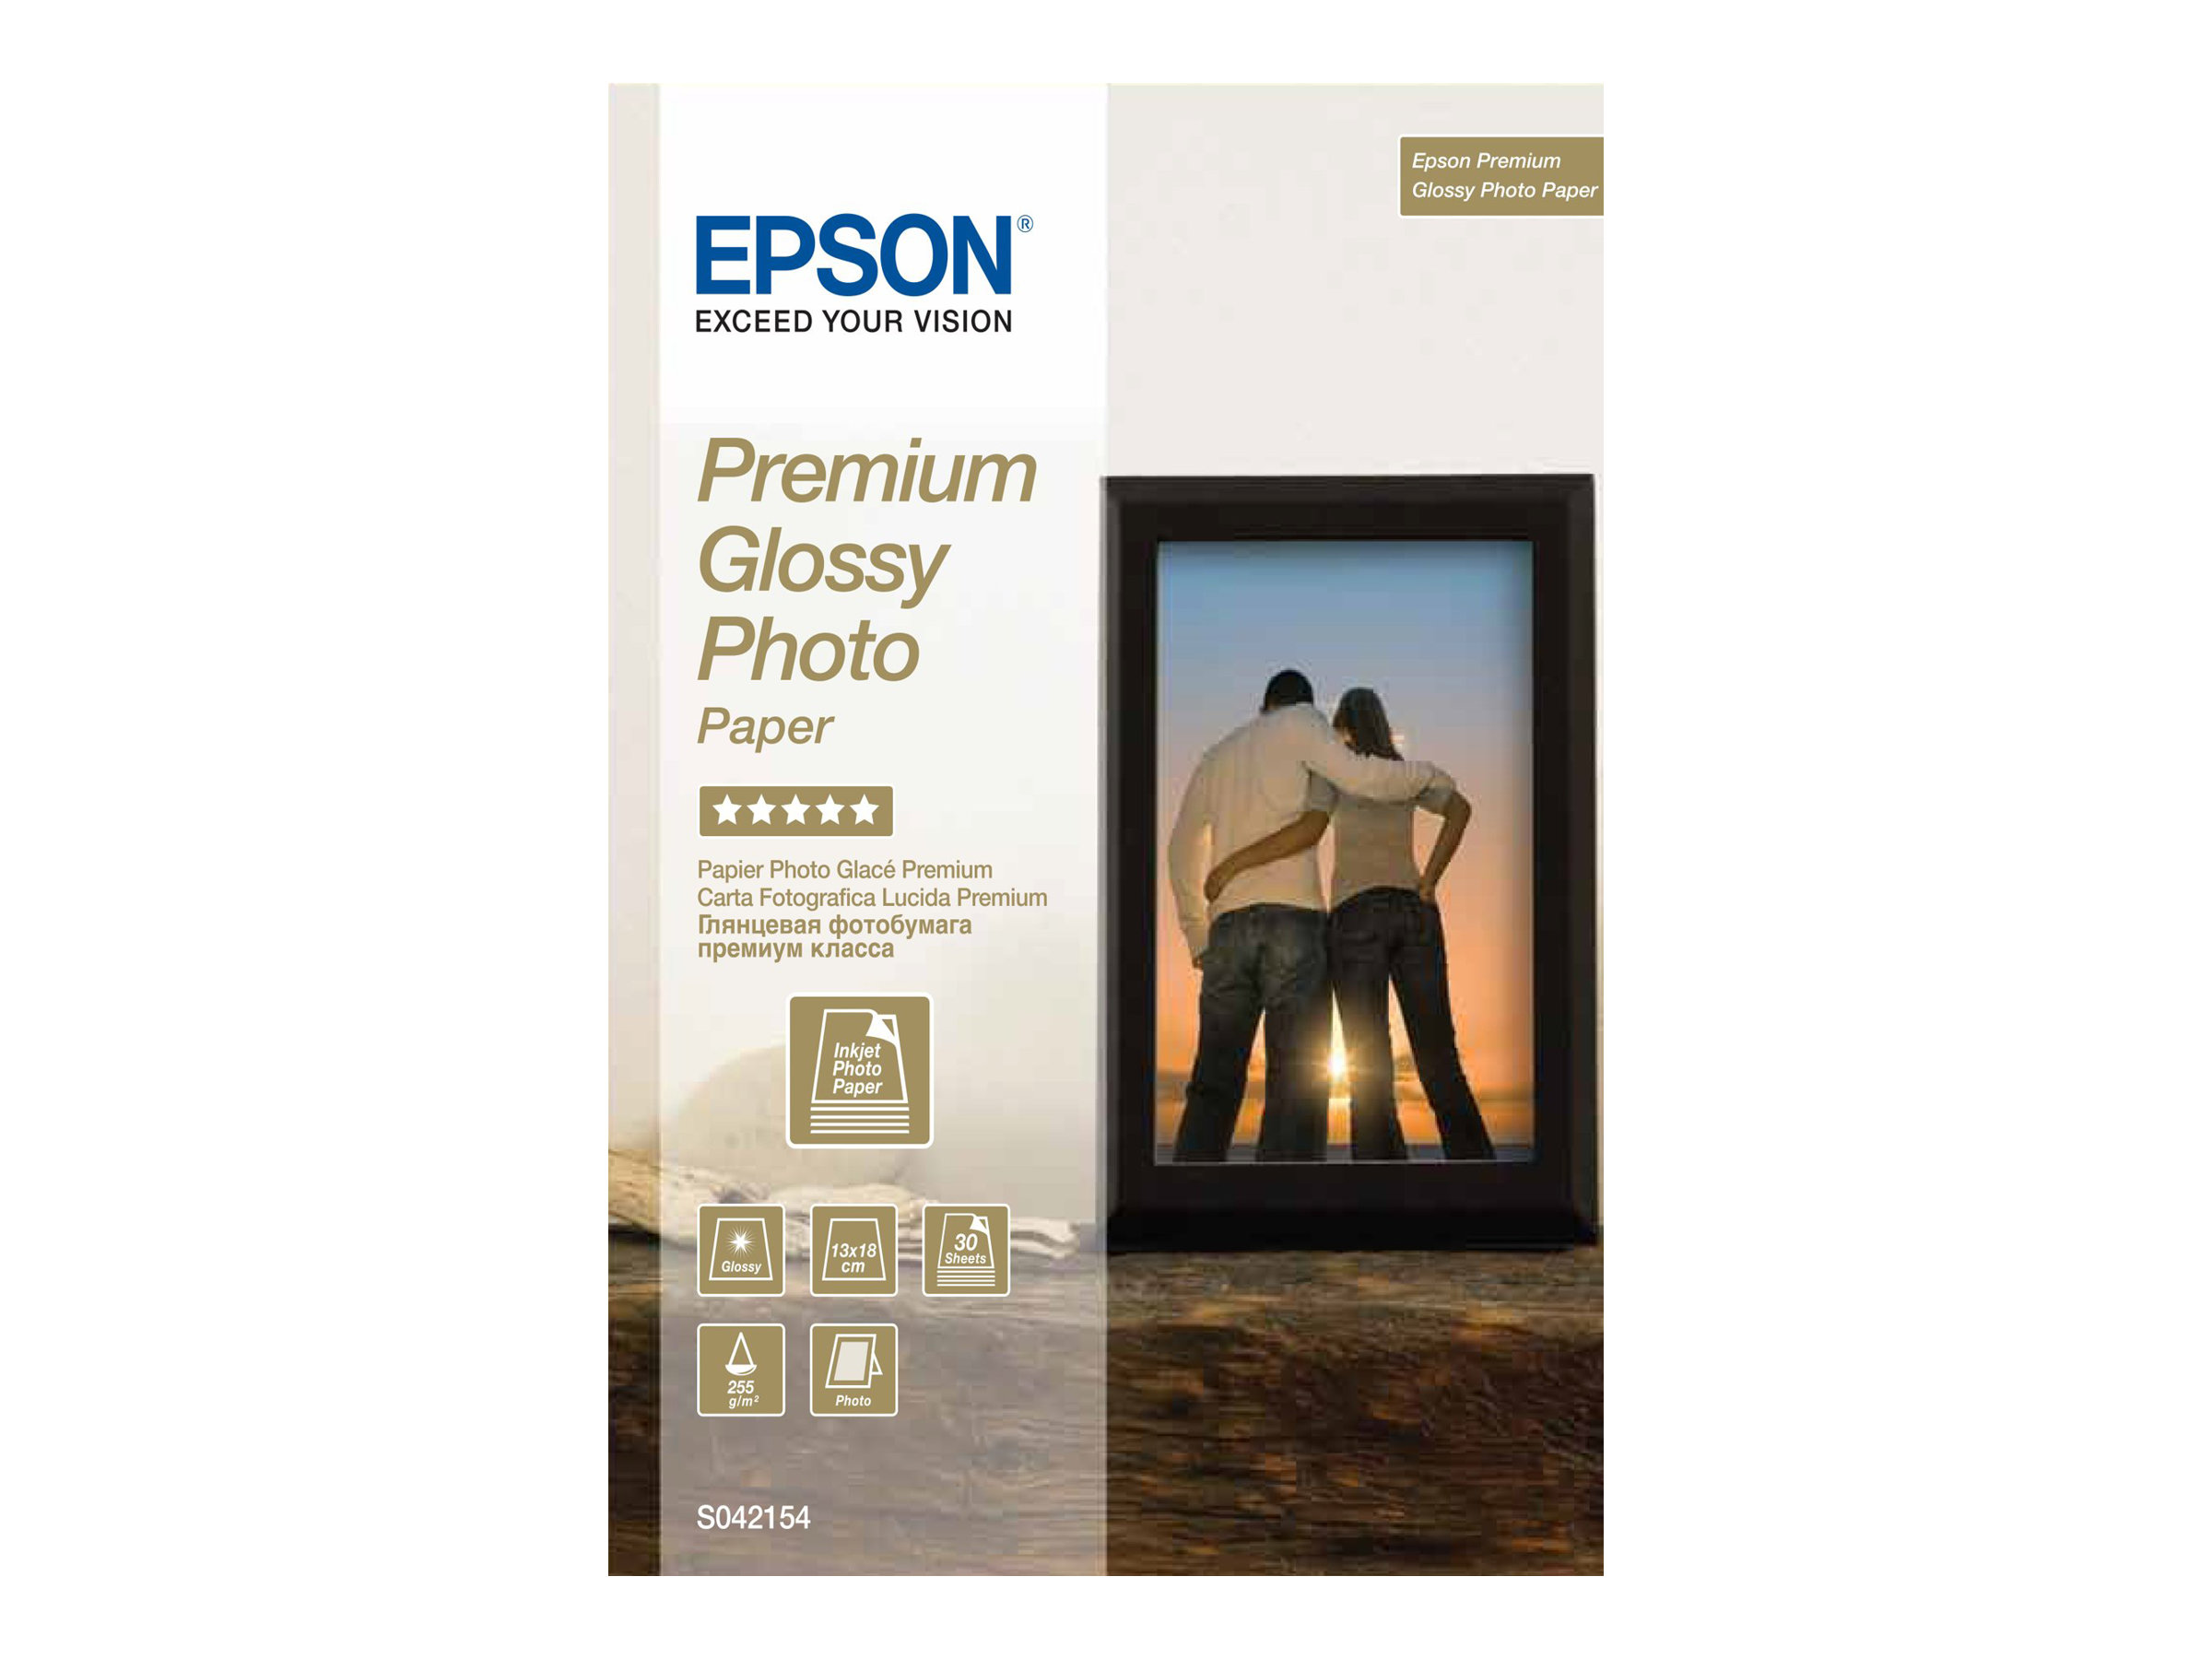 Epson Premium Glossy Photo Paper - papier photo - 30 feuille(s)